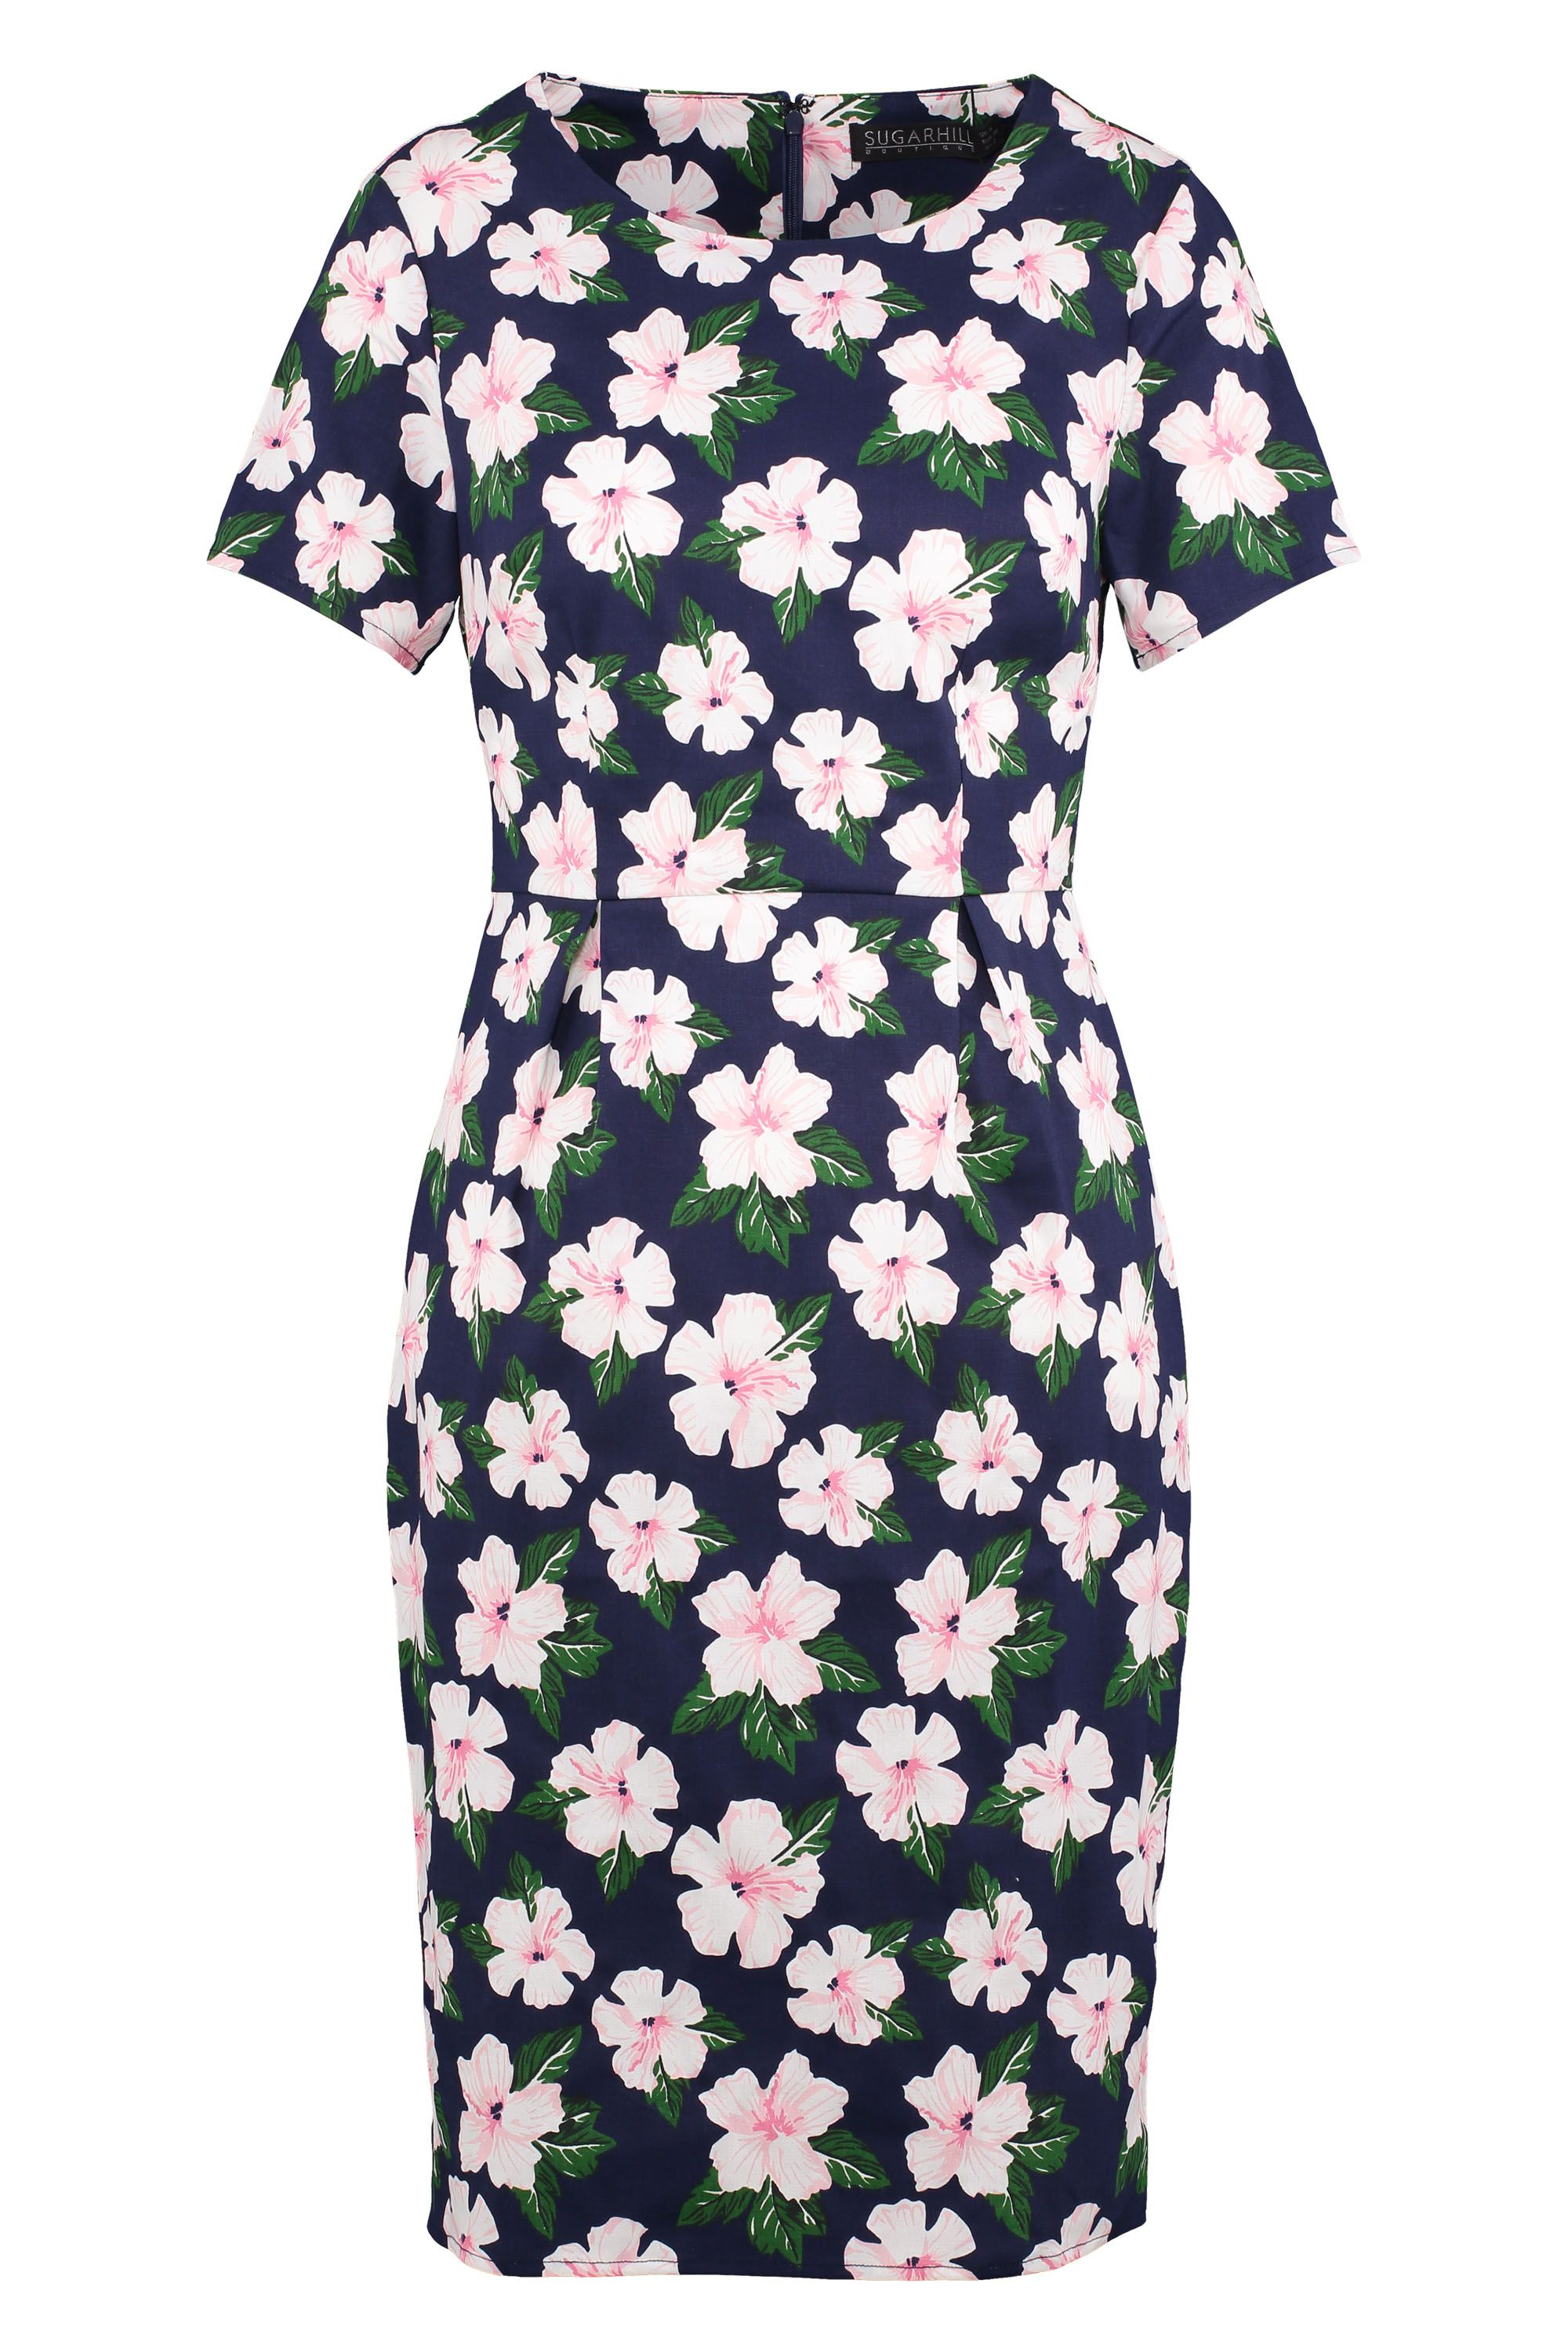 Sugarhill Boutique Bloom Floral Knee Length Dress, Blue